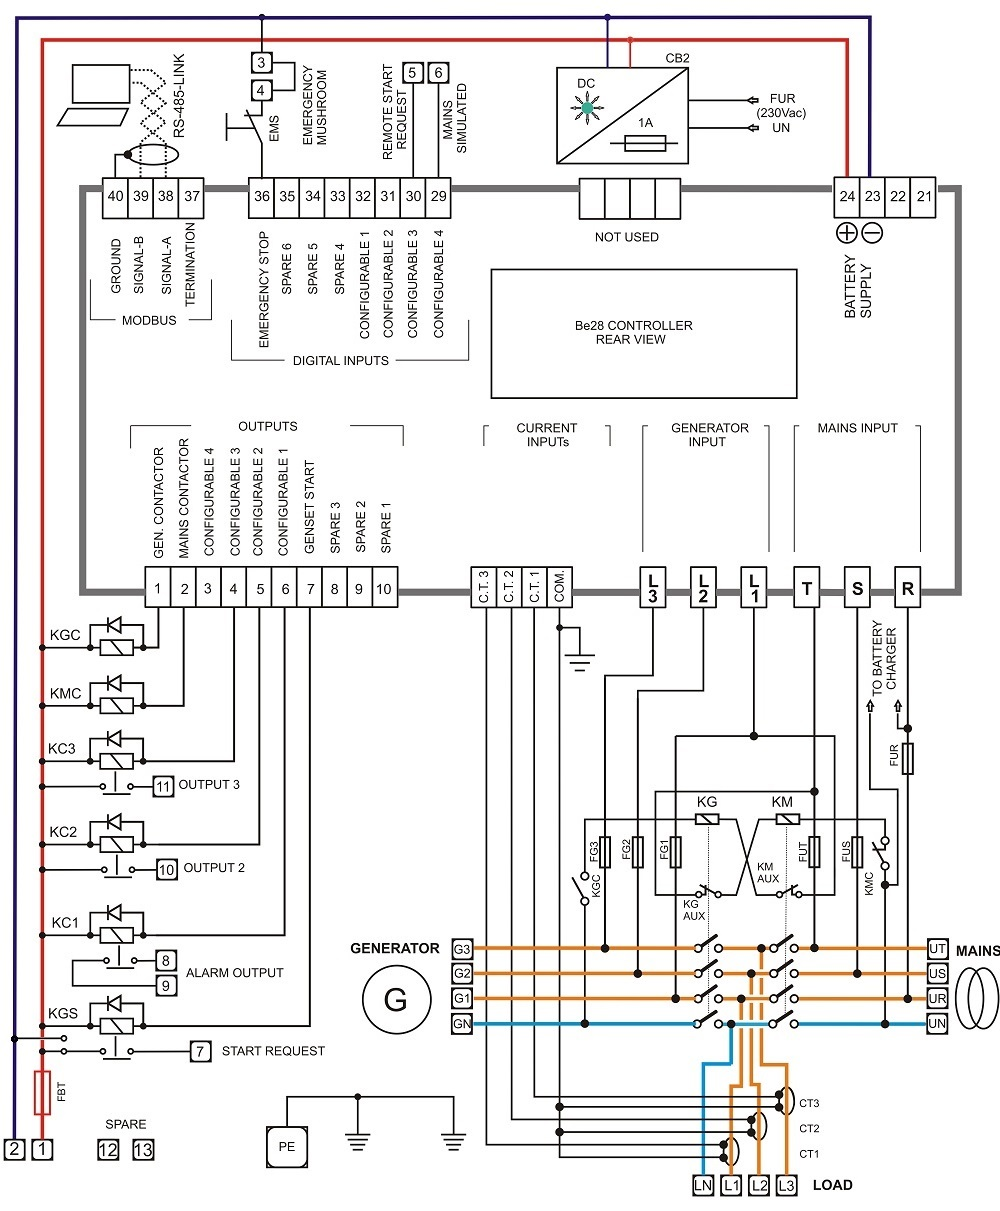 Rover Fuse Box Diagram Free Download Wiring Ford F 150 Generator Range L322 Diagrams Also With 1996 Additionally Citroen C5 House